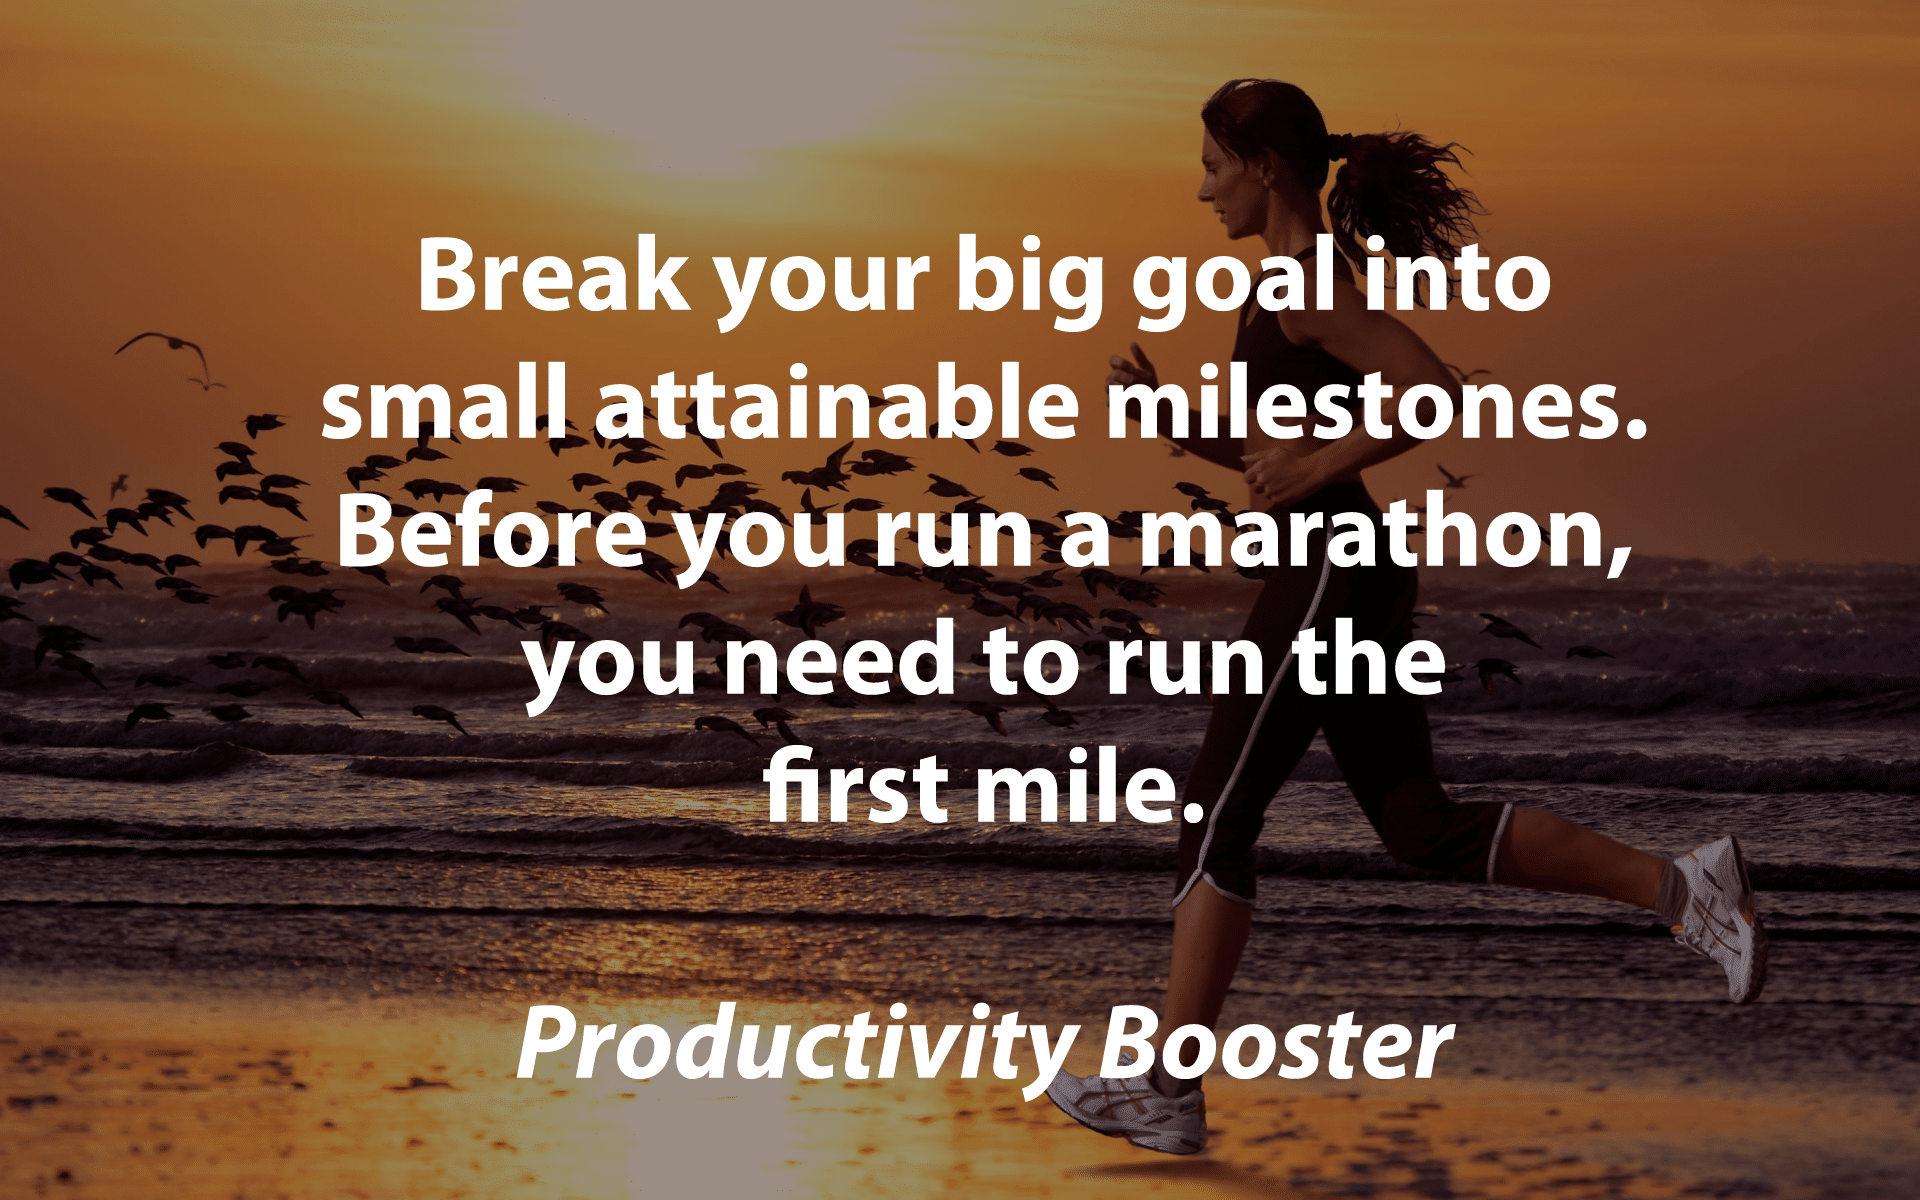 break your big goal into attainable milestones